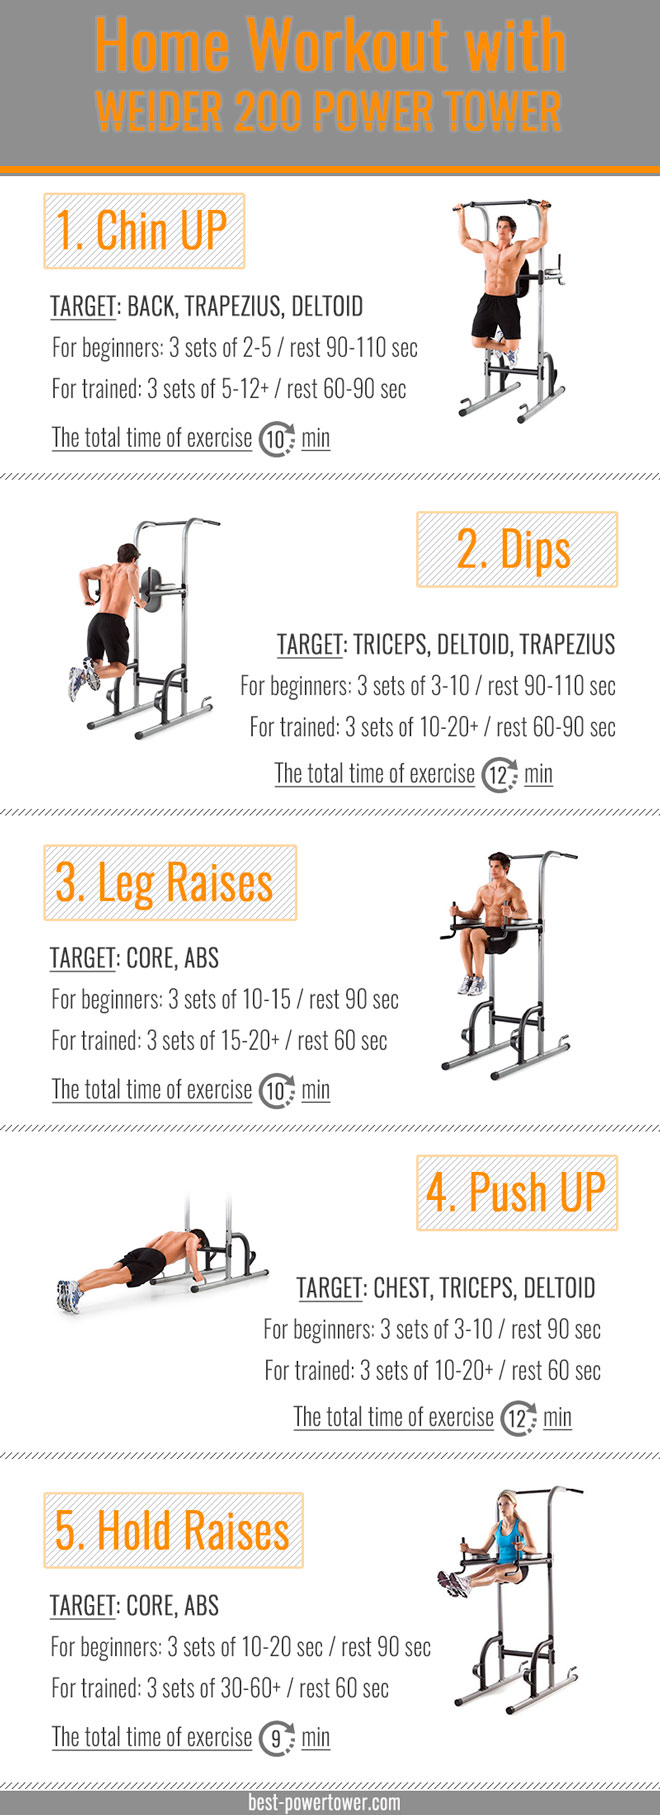 Weider Power Tower workout